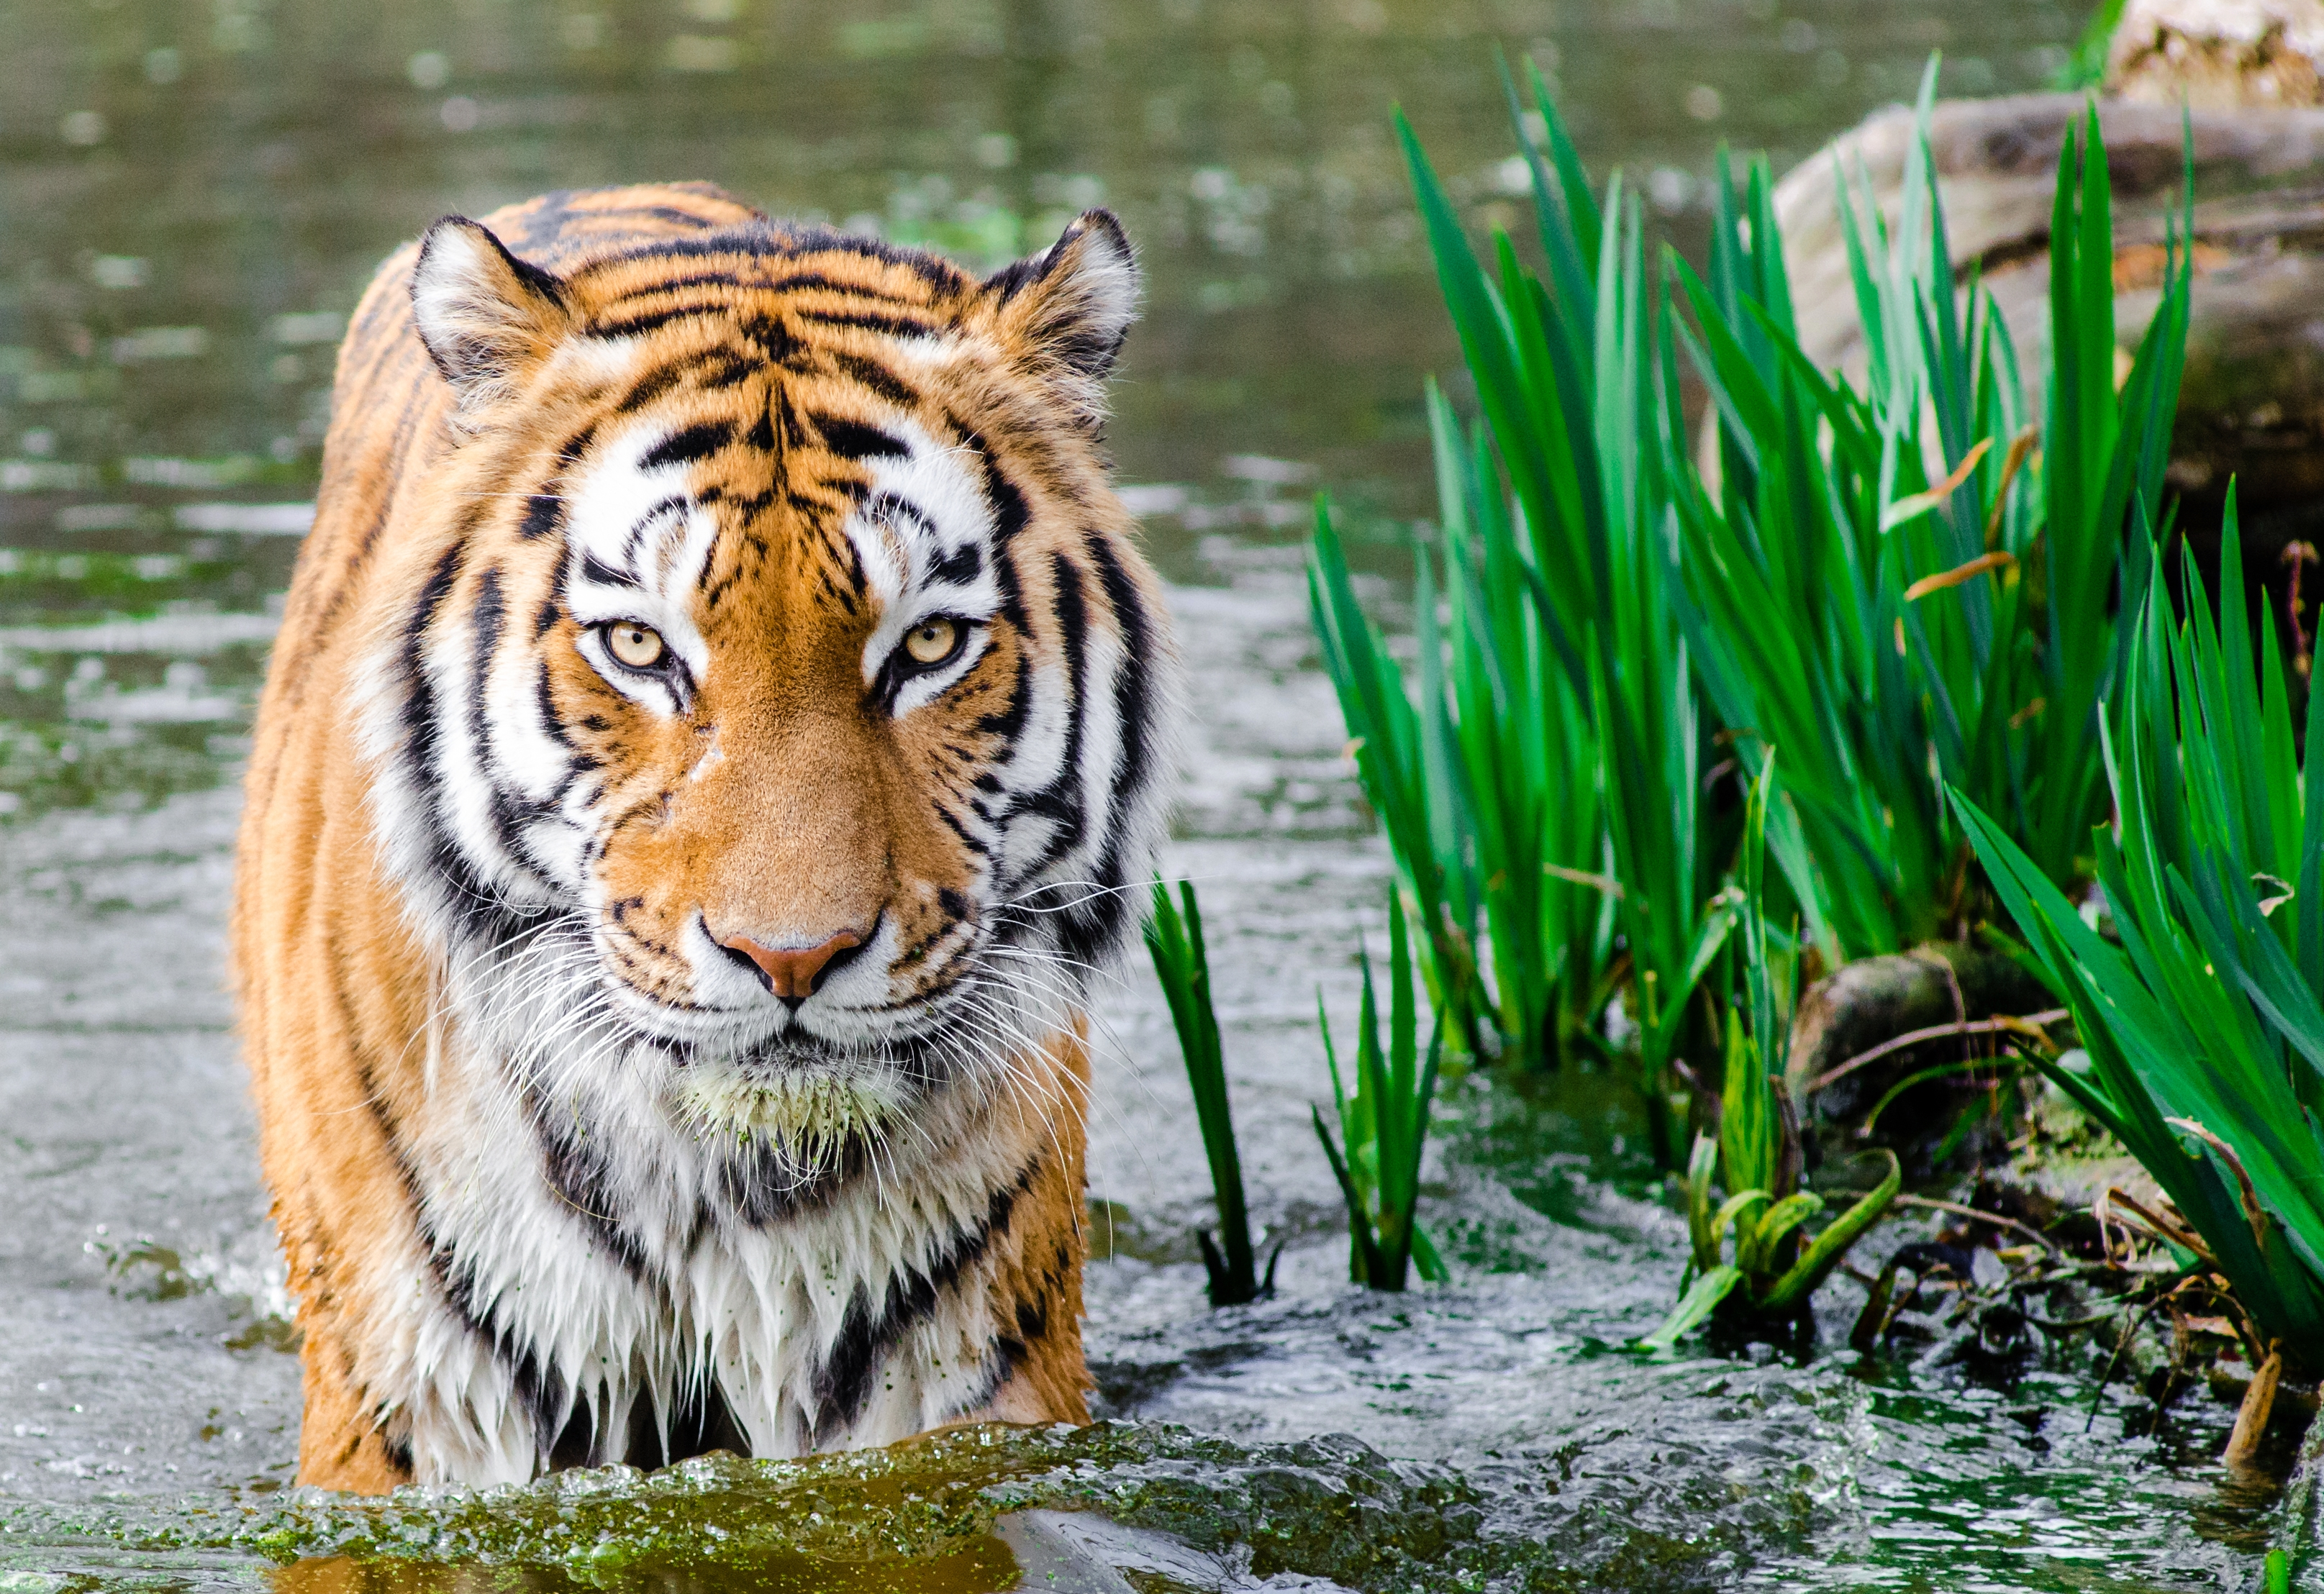 Free download high resolution image - free image free photo free stock image public domain picture -Sibirische Tiger im Wasser